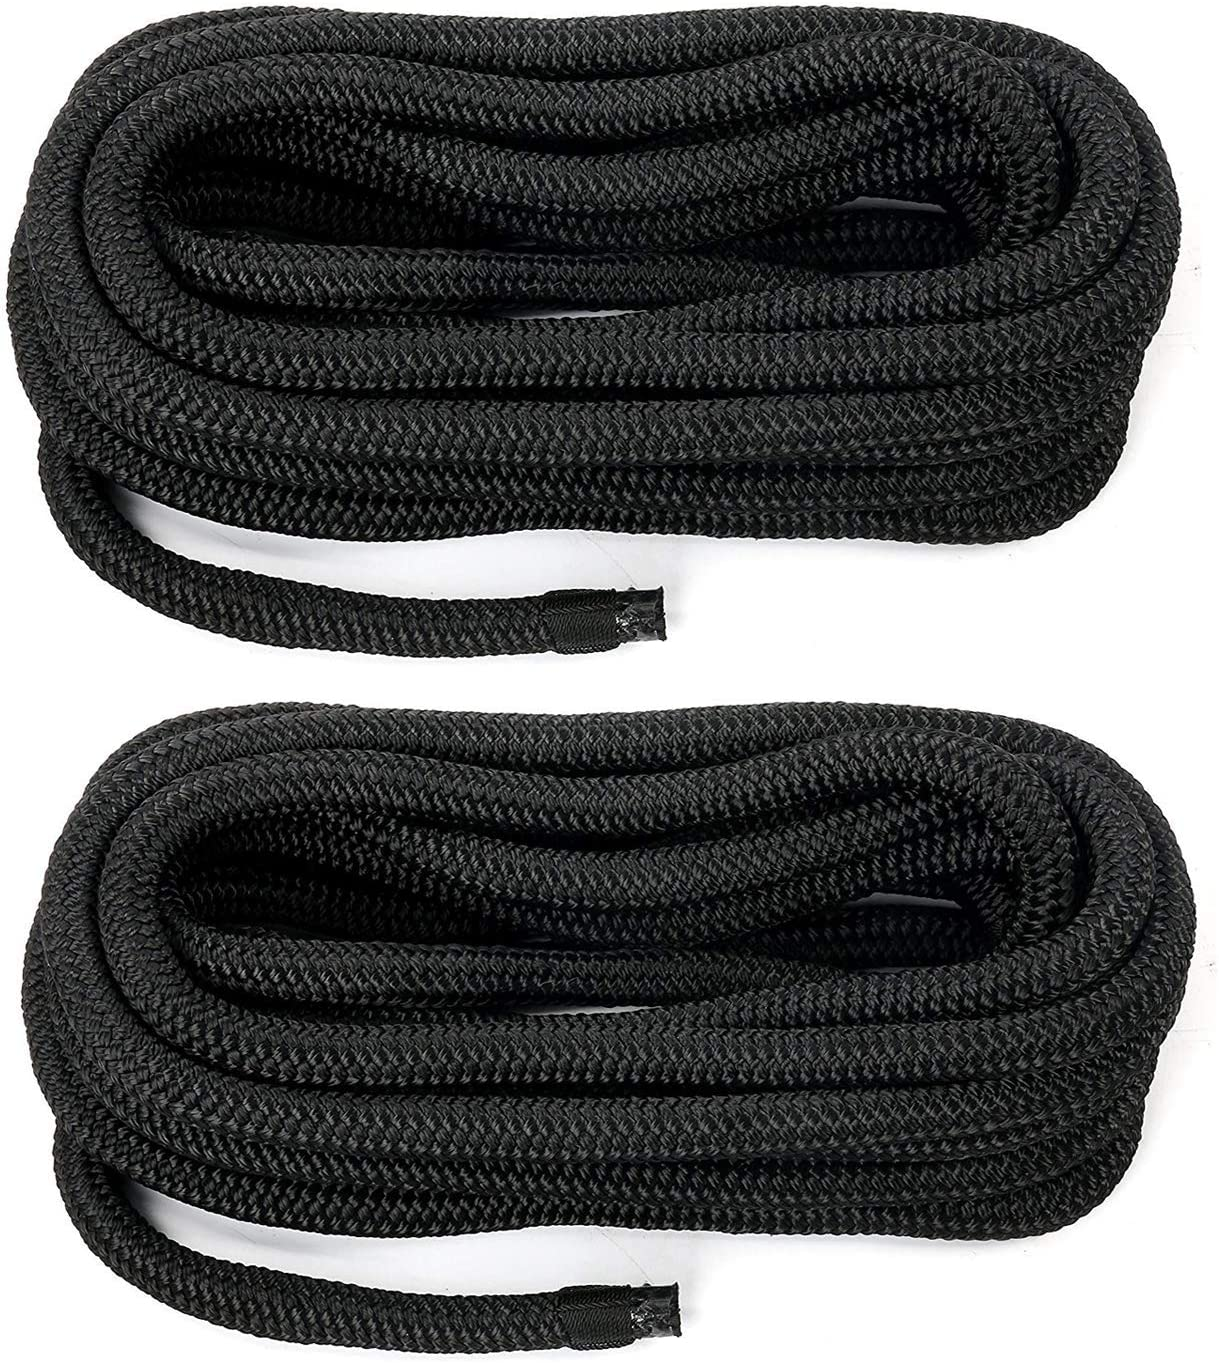 Amarine Max 71% OFF Made Double Braided Nylon Dock lbs Fort Worth Mall Breaking 7700 Lines S